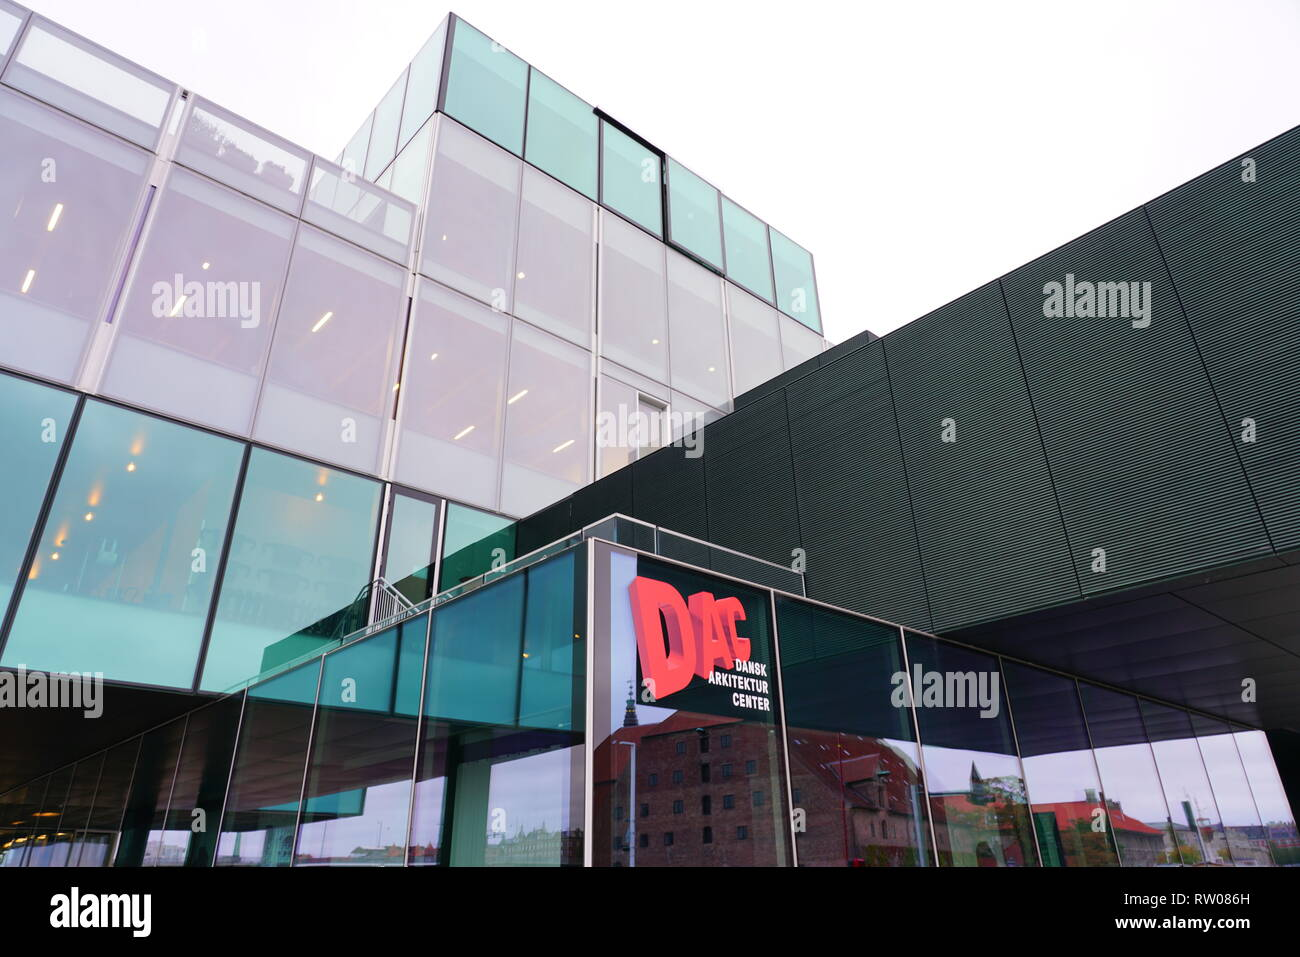 COPENHAGEN, DENMARK -26 SEP 2018- View of the Danish Architecture Center (Dansk Arkitektur Center or DAC) in Copenhagen, Denmark. - Stock Image